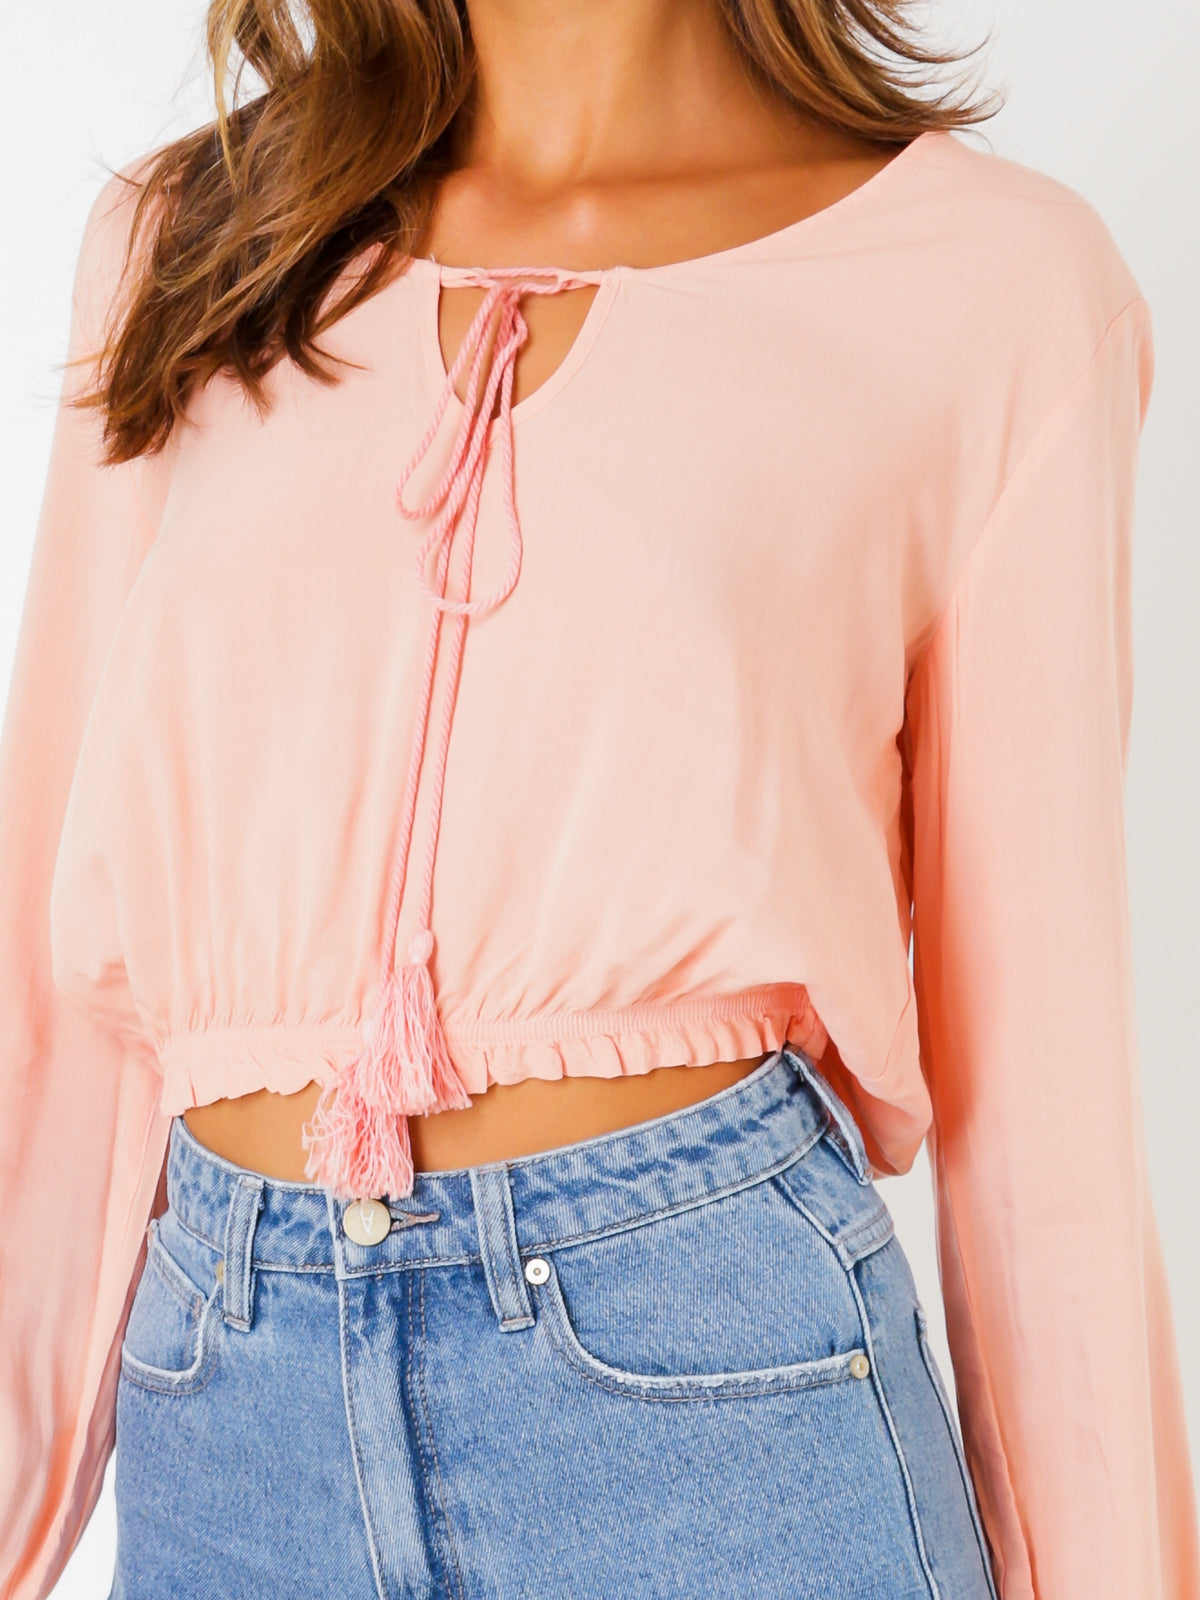 Norah Top in Dusty Pink